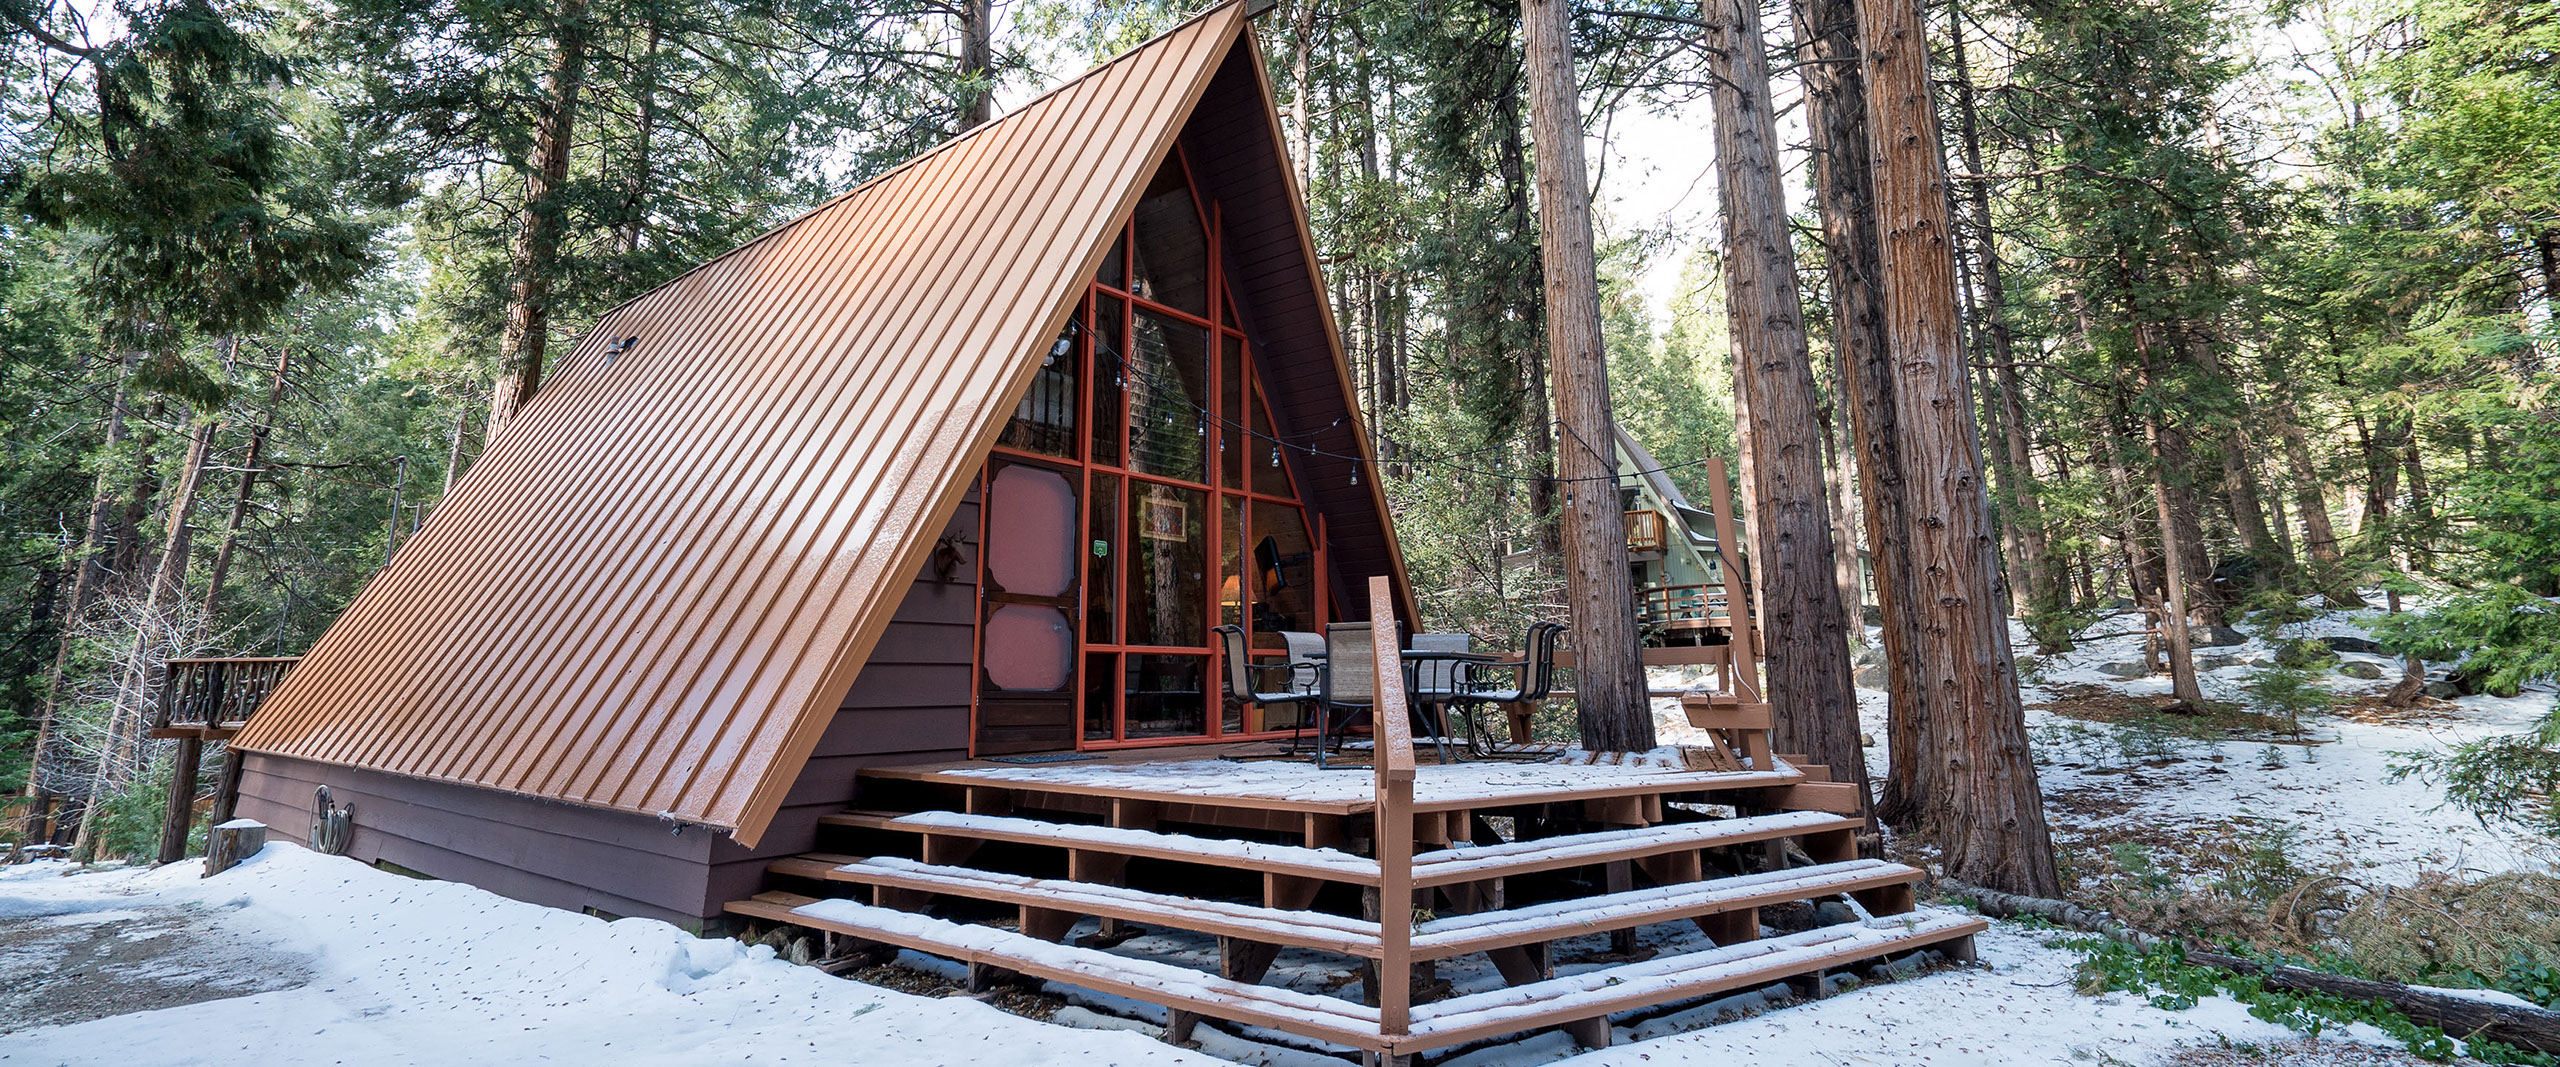 hip rental com retreat vacation experienceidyllwild cabins lindhaven search idyllwildcabins idyllwild s